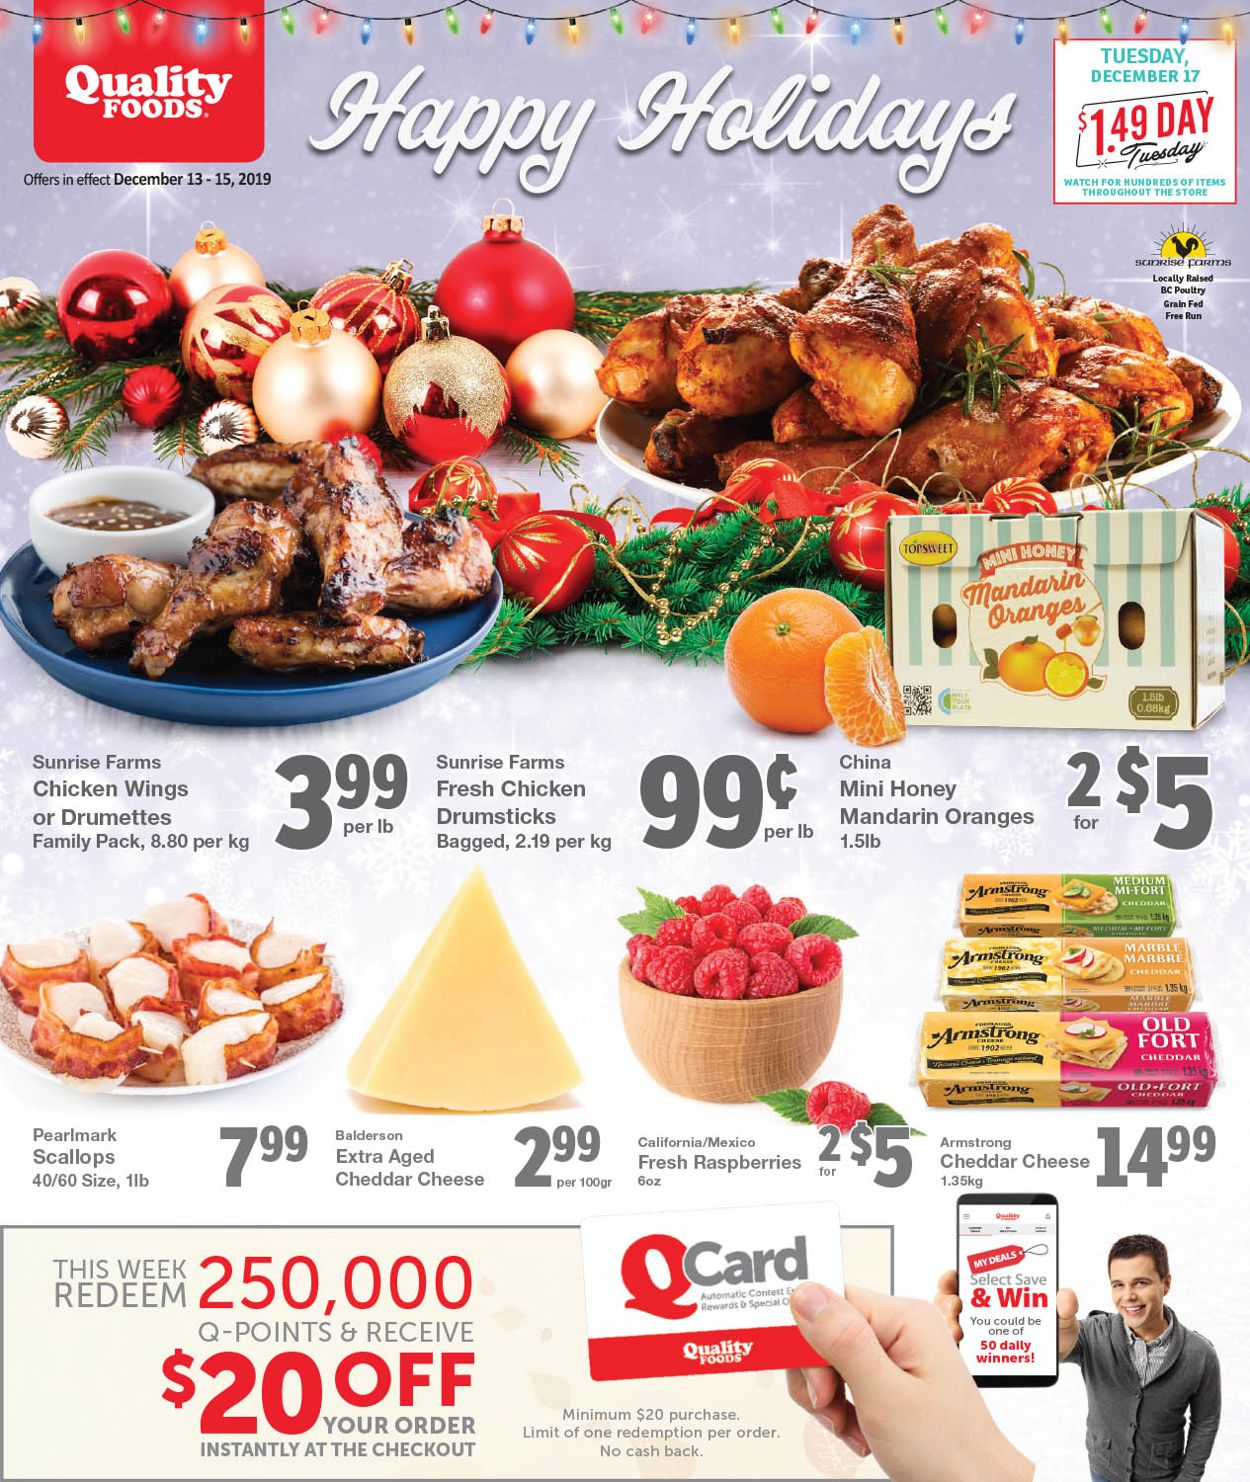 Quality Foods - Holiday 2019 Flyer